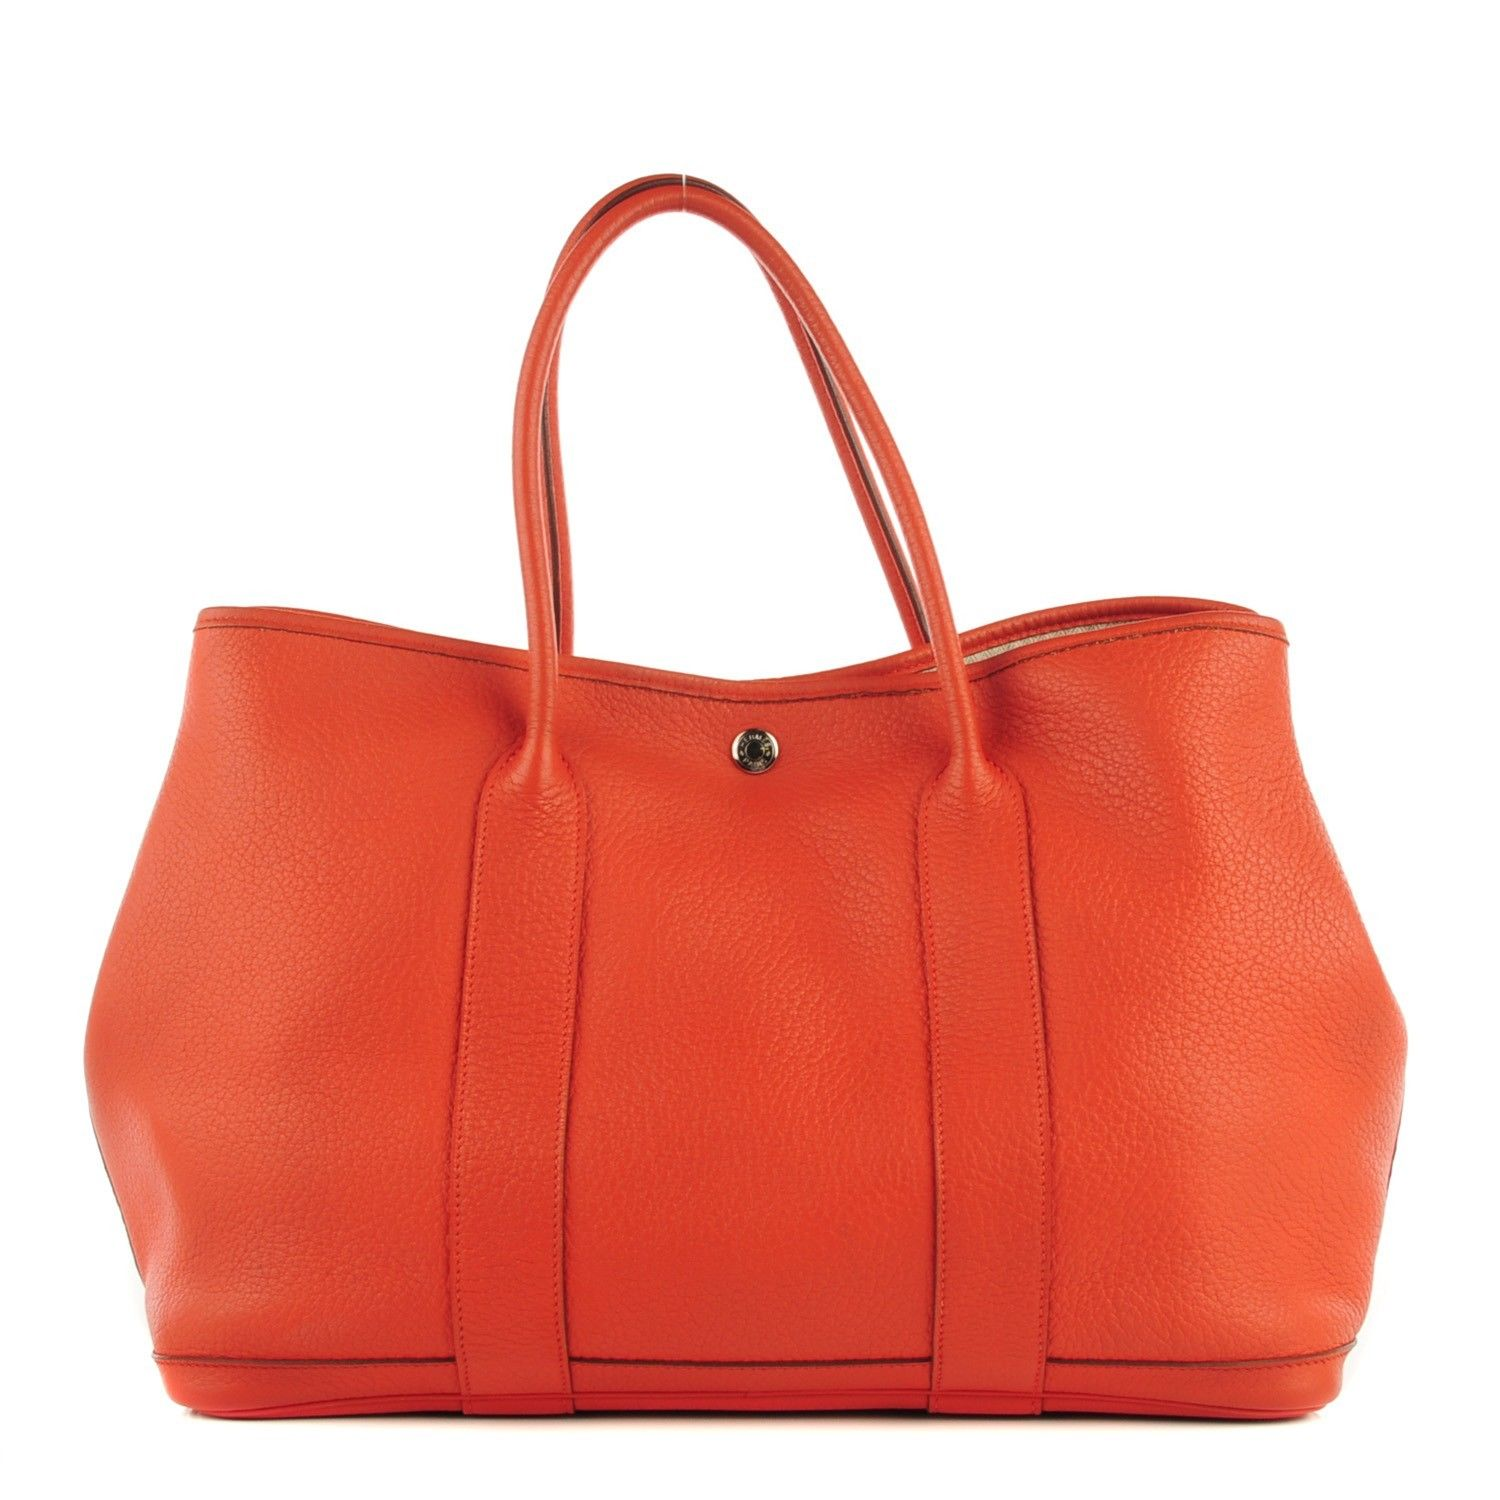 a25685eb868d  4000 Hermes Classic Garden Party 36 Orange Calf Leather Tote Bag ...